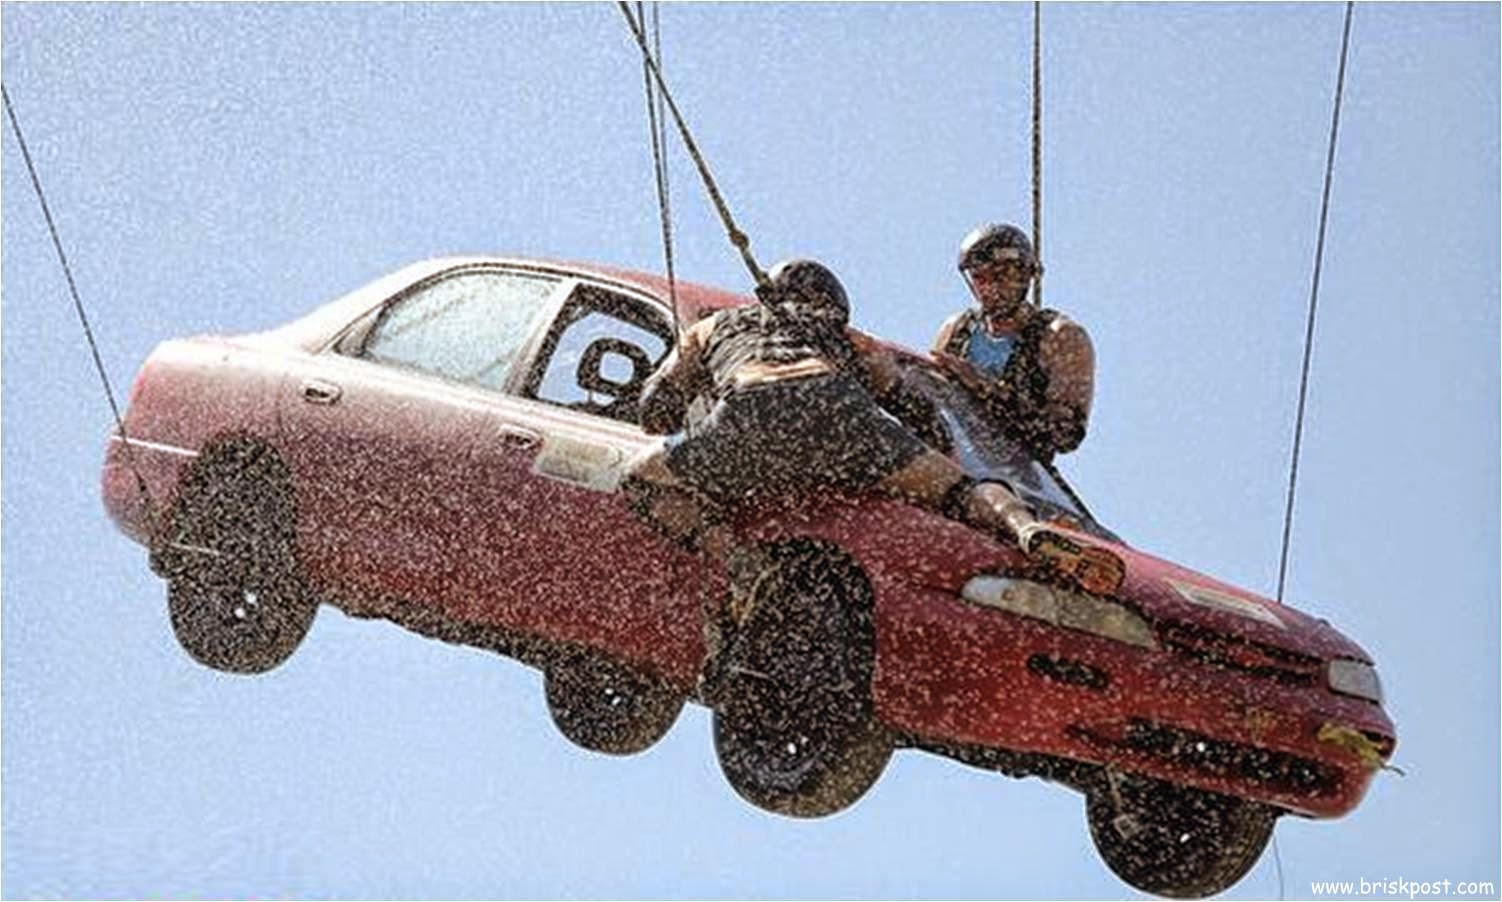 Fear Factor Khatron Ke Khiladi 5 contestant Daya and Nikitin on hanging car on height in water shower during a stunt